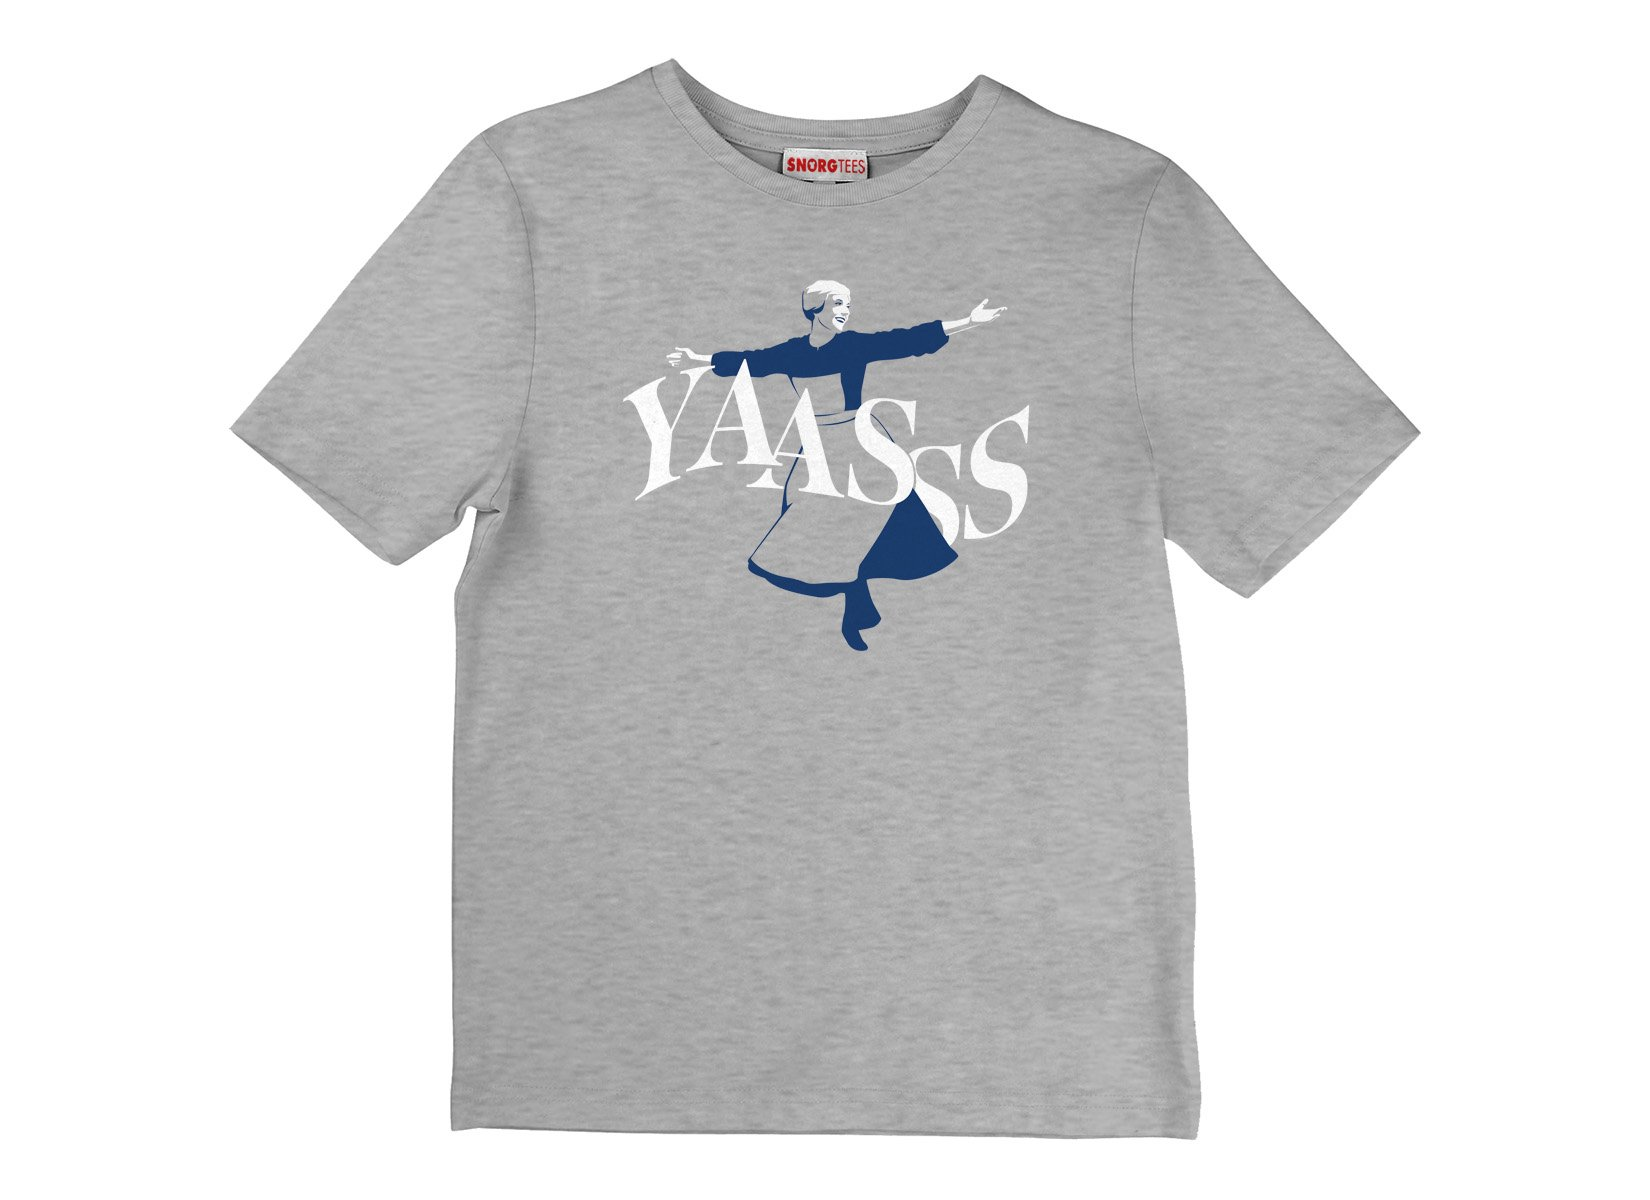 YAASSS on Kids T-Shirt